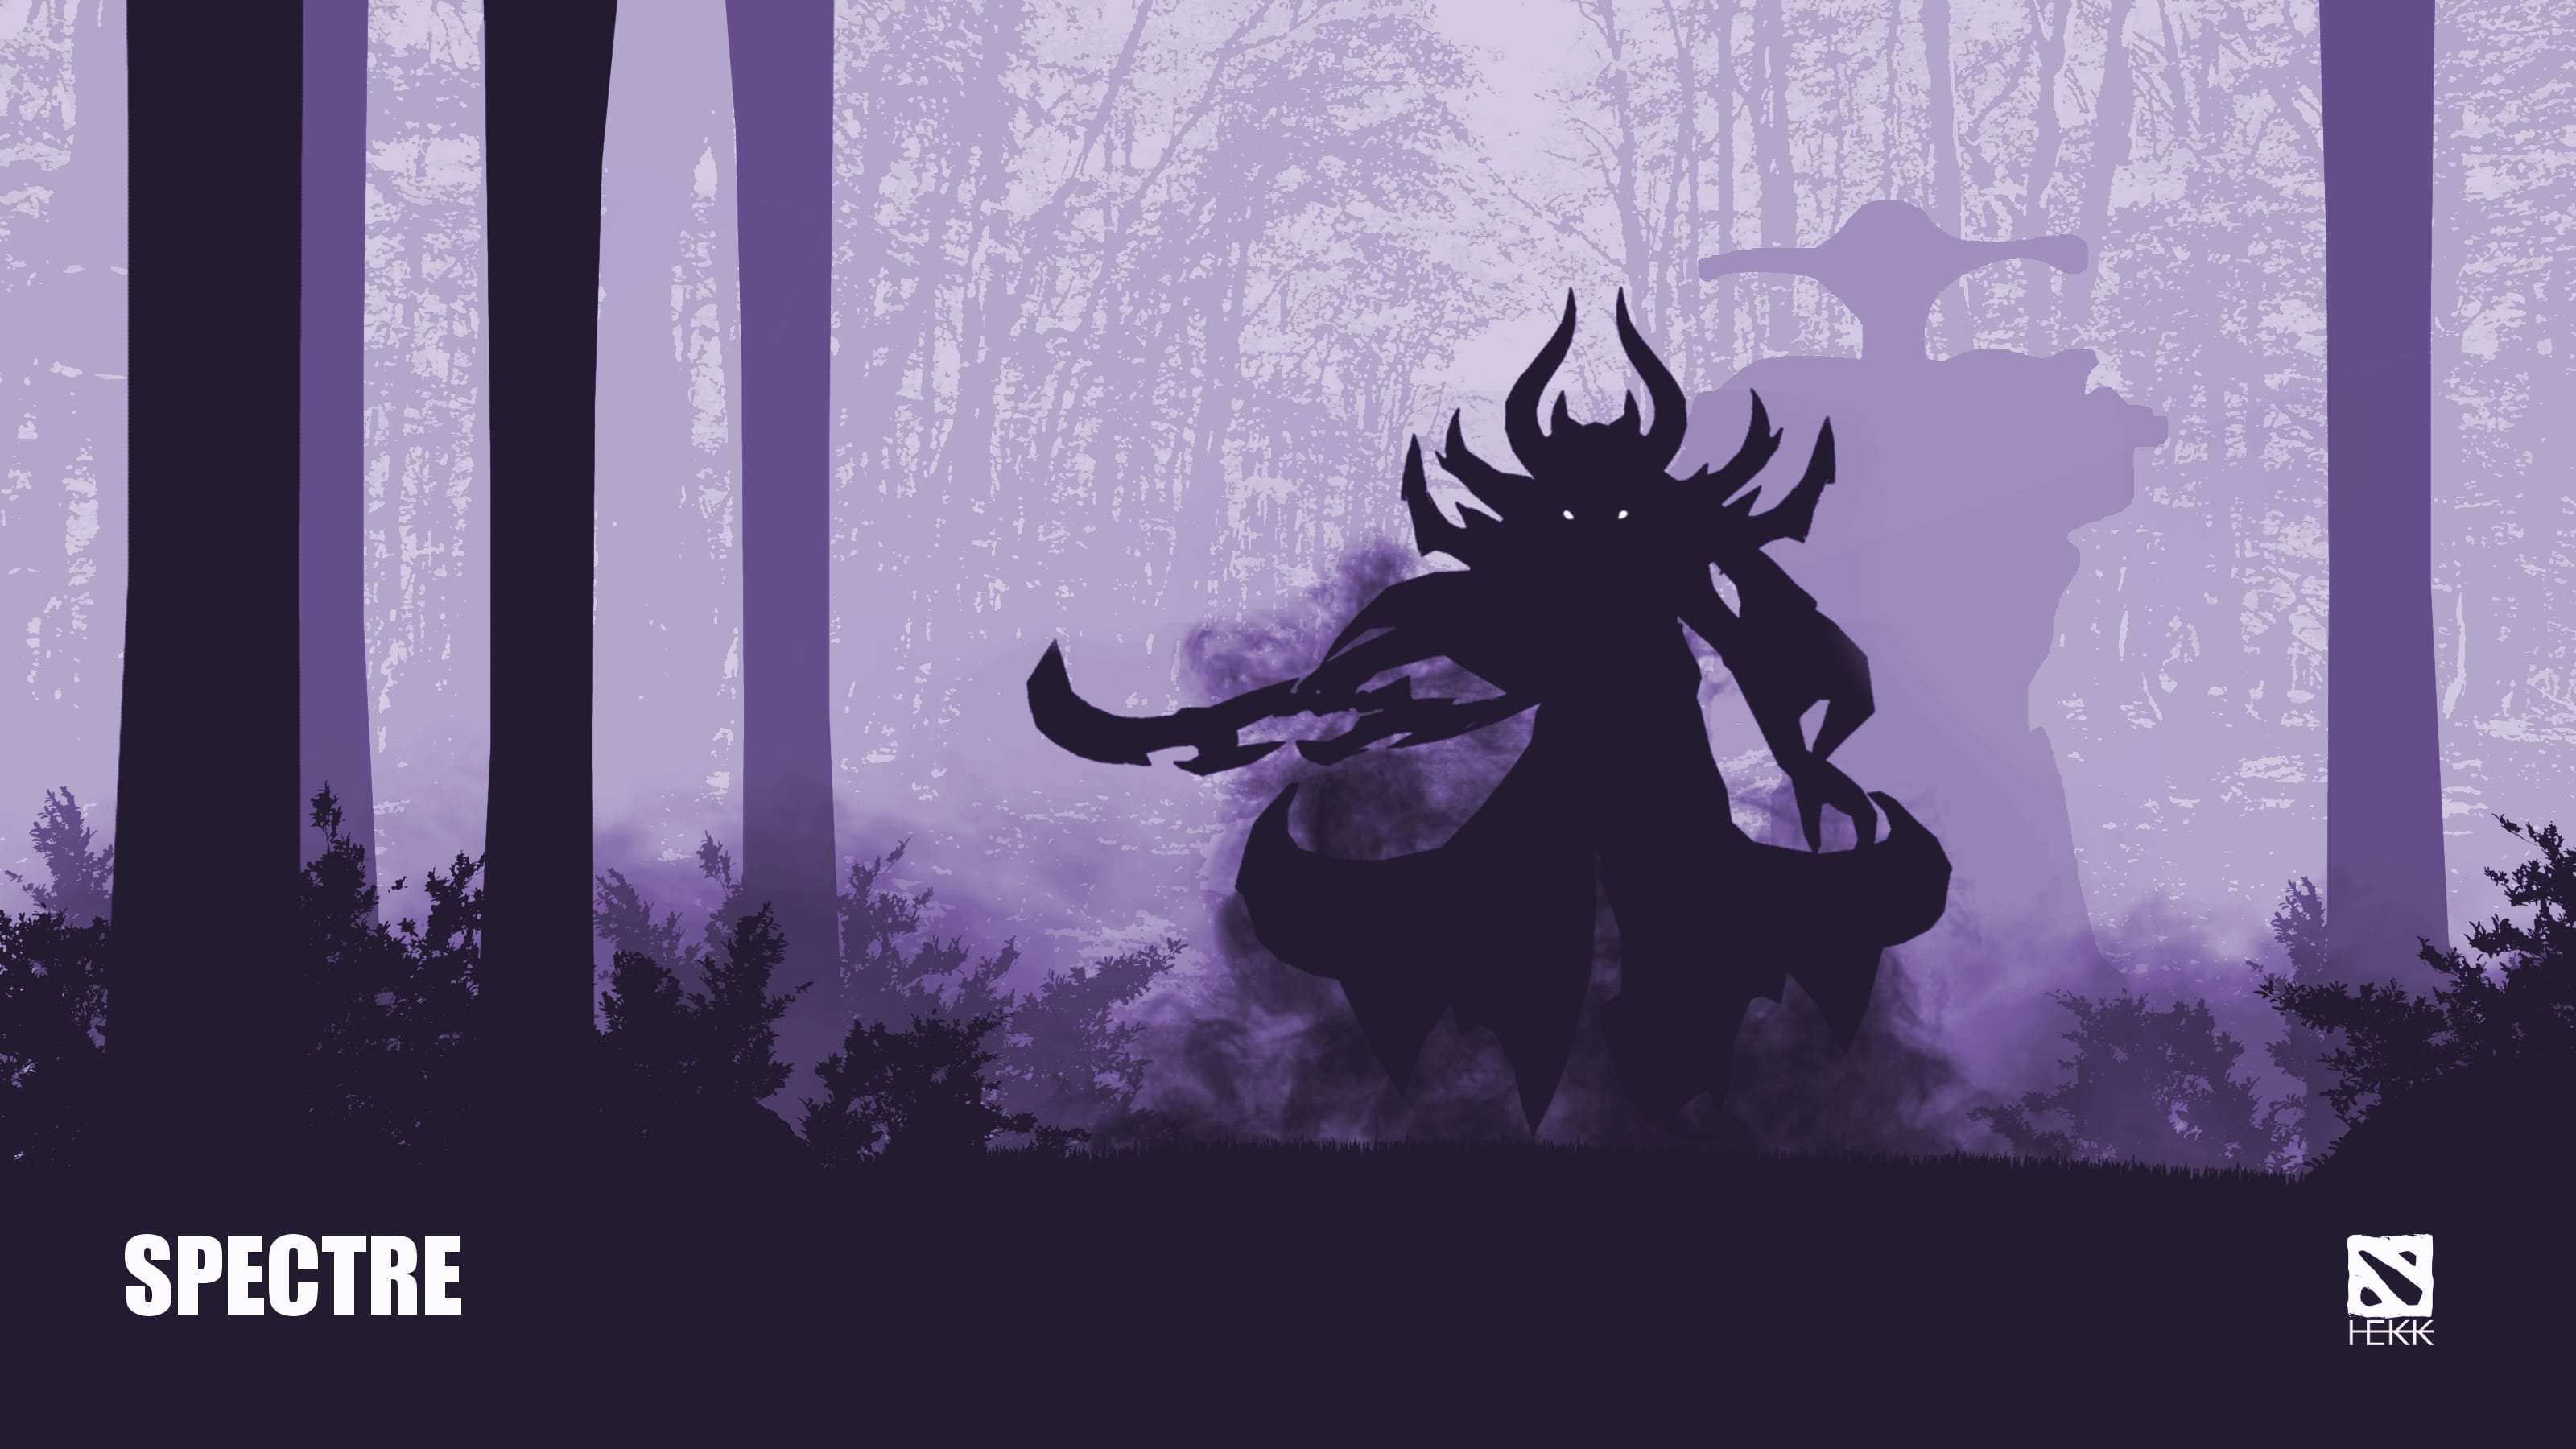 Dota2 : Spectre Wallpaper